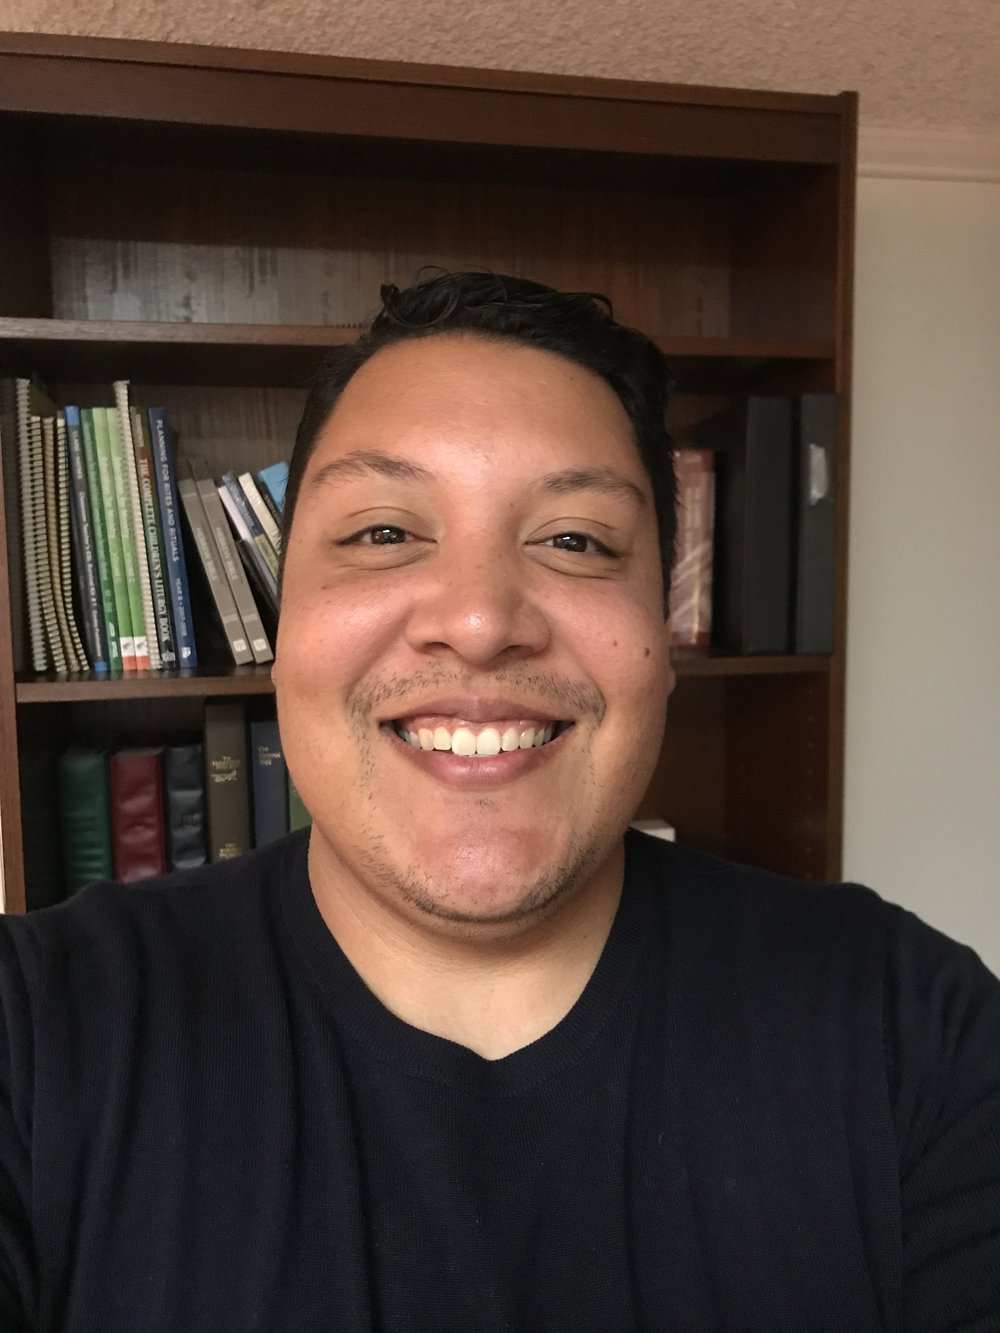 Gabriel Vazquez-Reyes, Youth & Family Minister